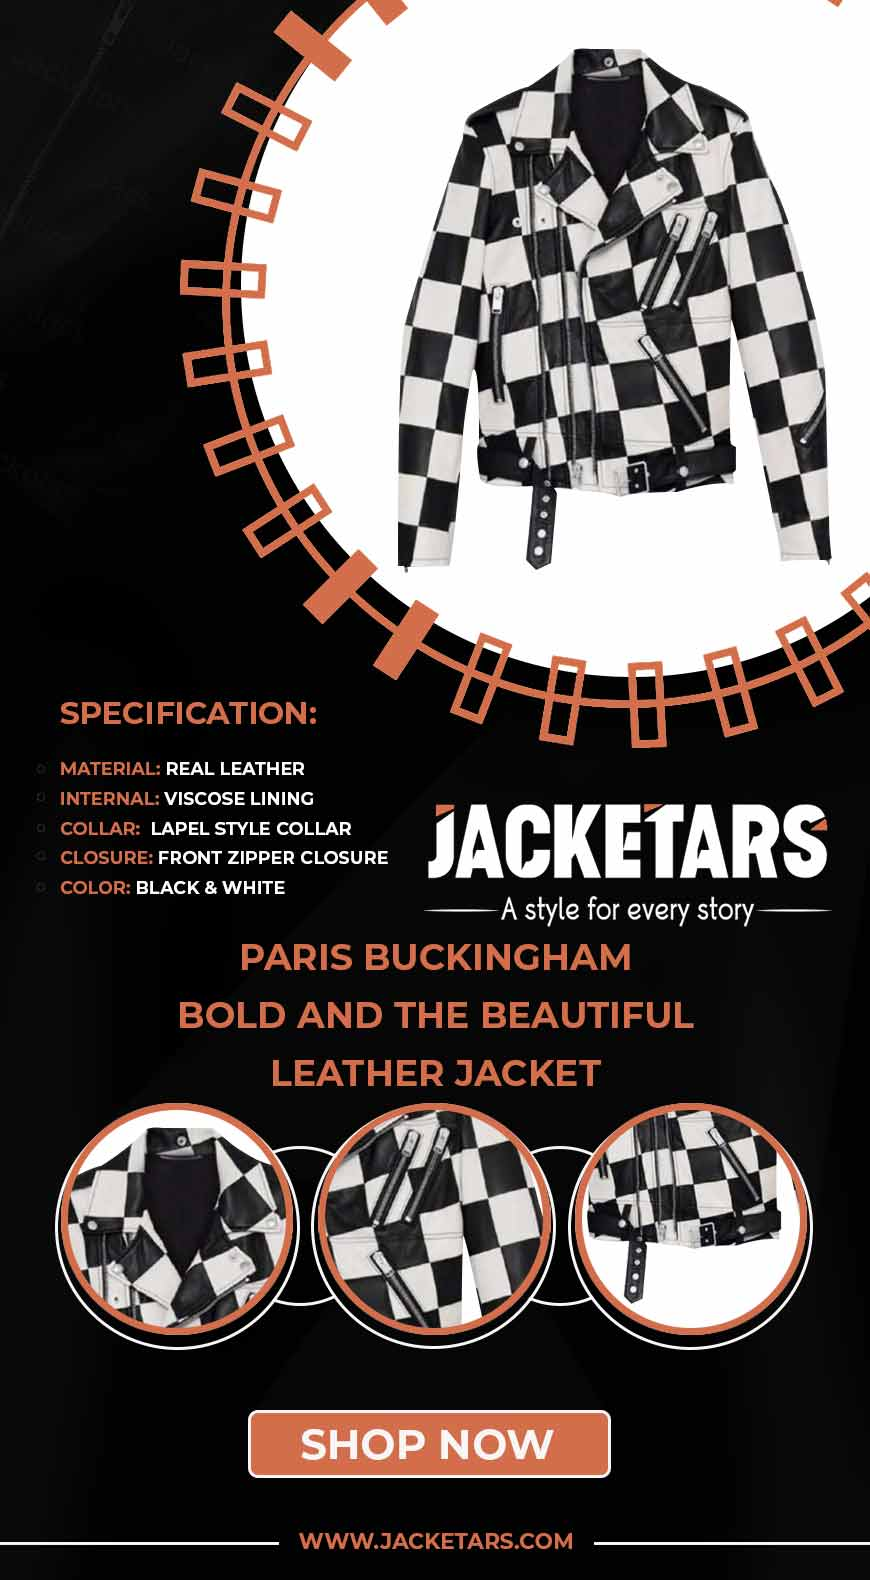 Paris Buckingham Bold and the Beautiful Leather Jacket info